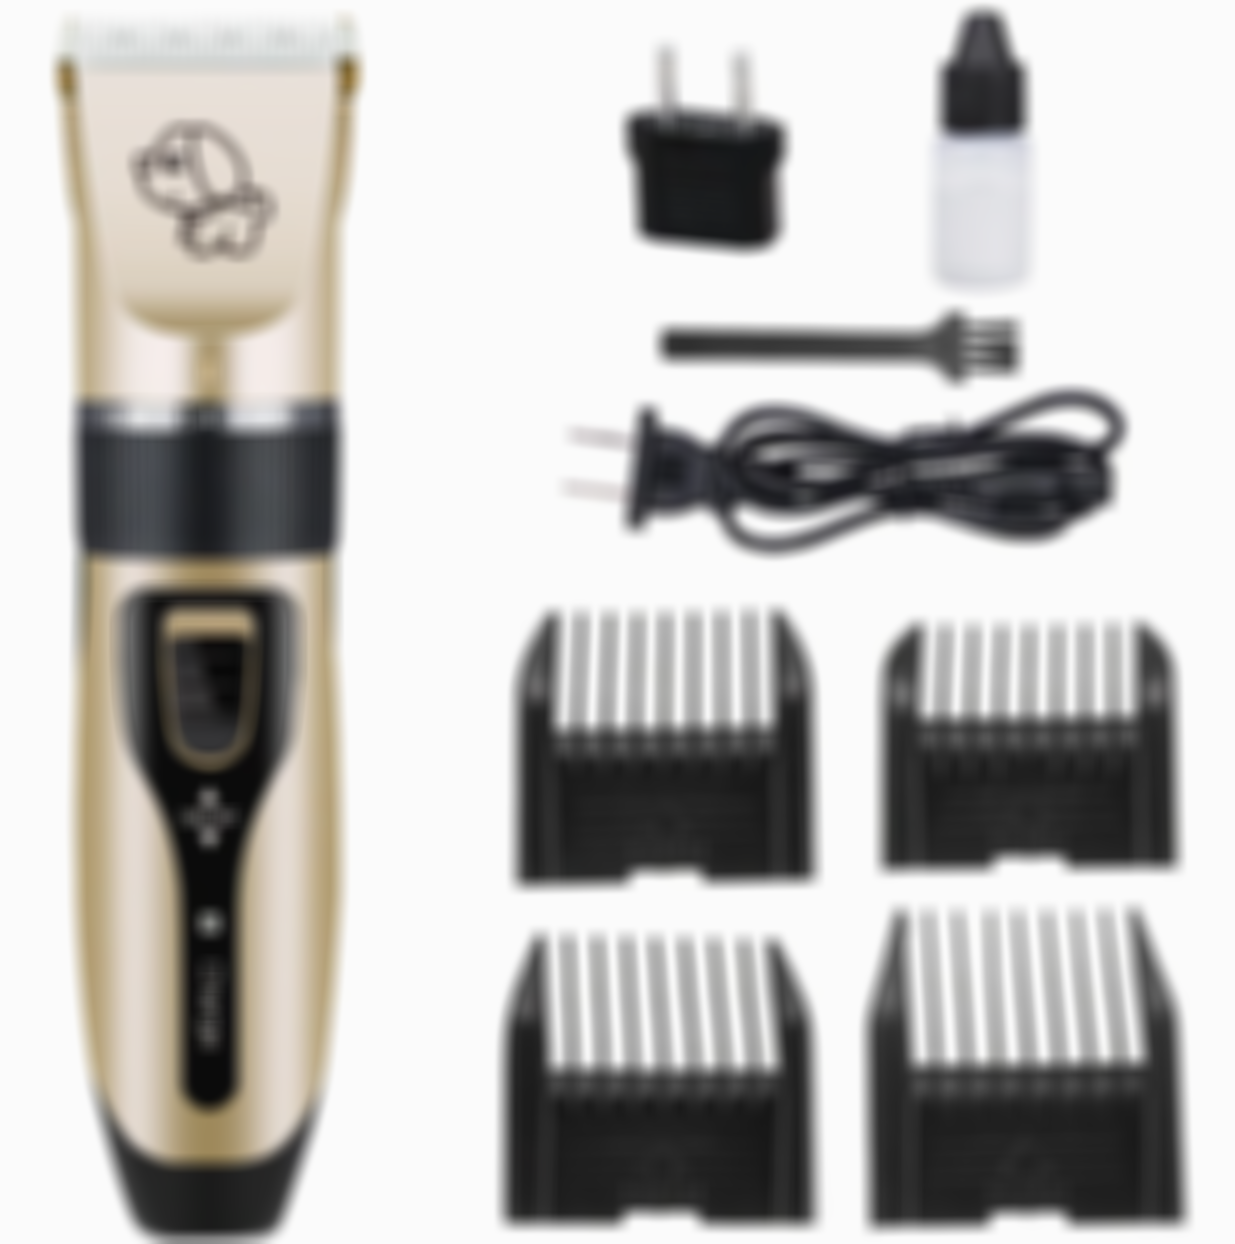 LOW NOISE PET HAIR CLIPPER - SAFELY TRIMS YOUR PET'S COAT!